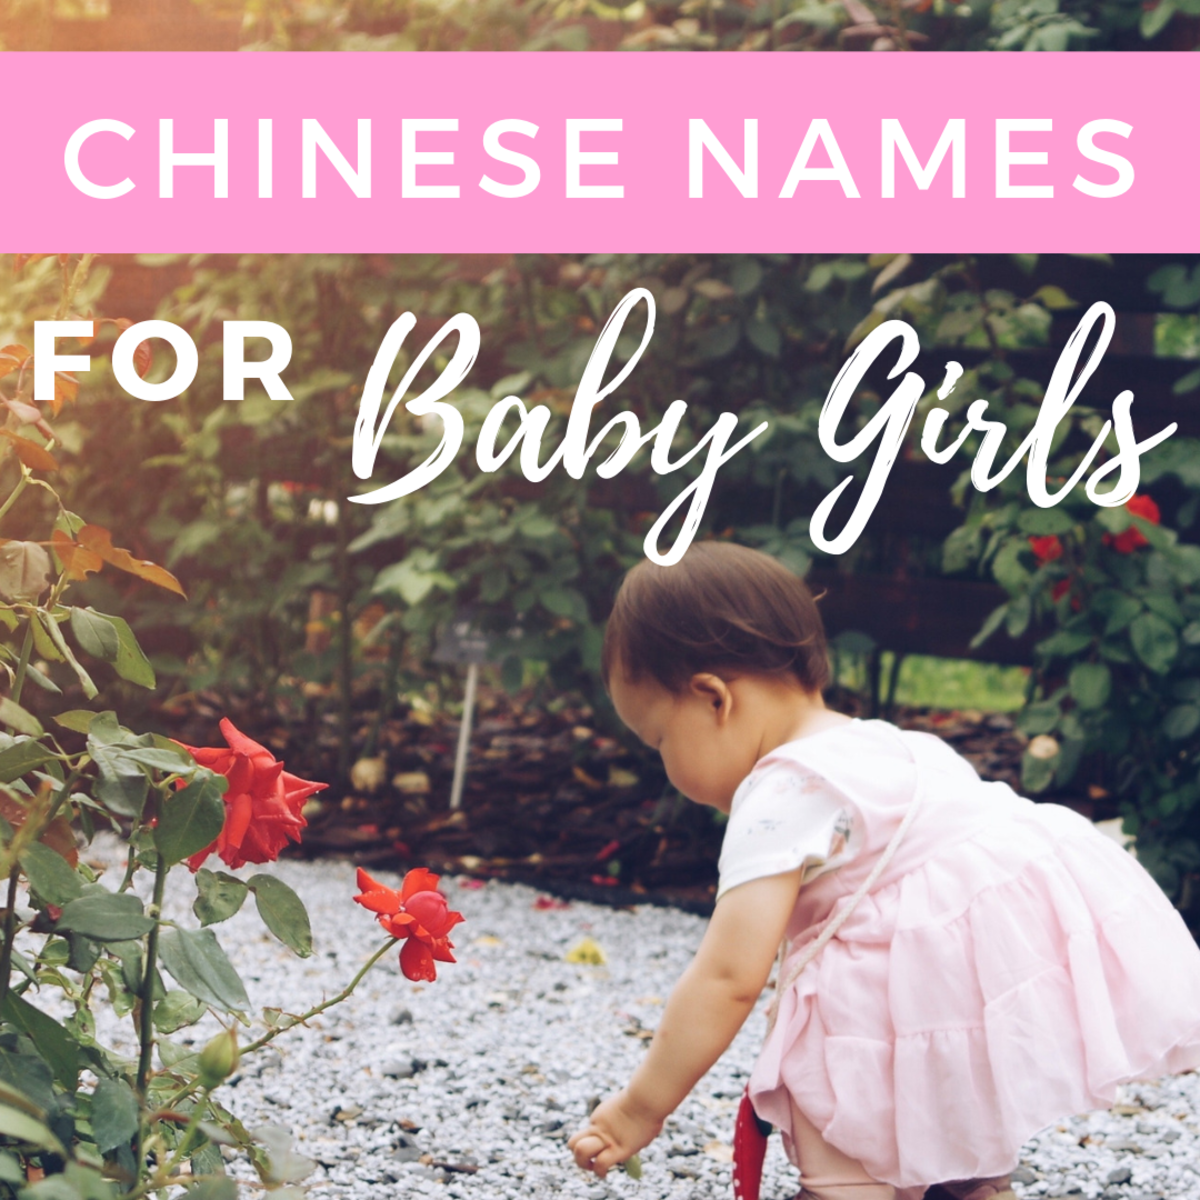 Chinese Names for Baby Girls